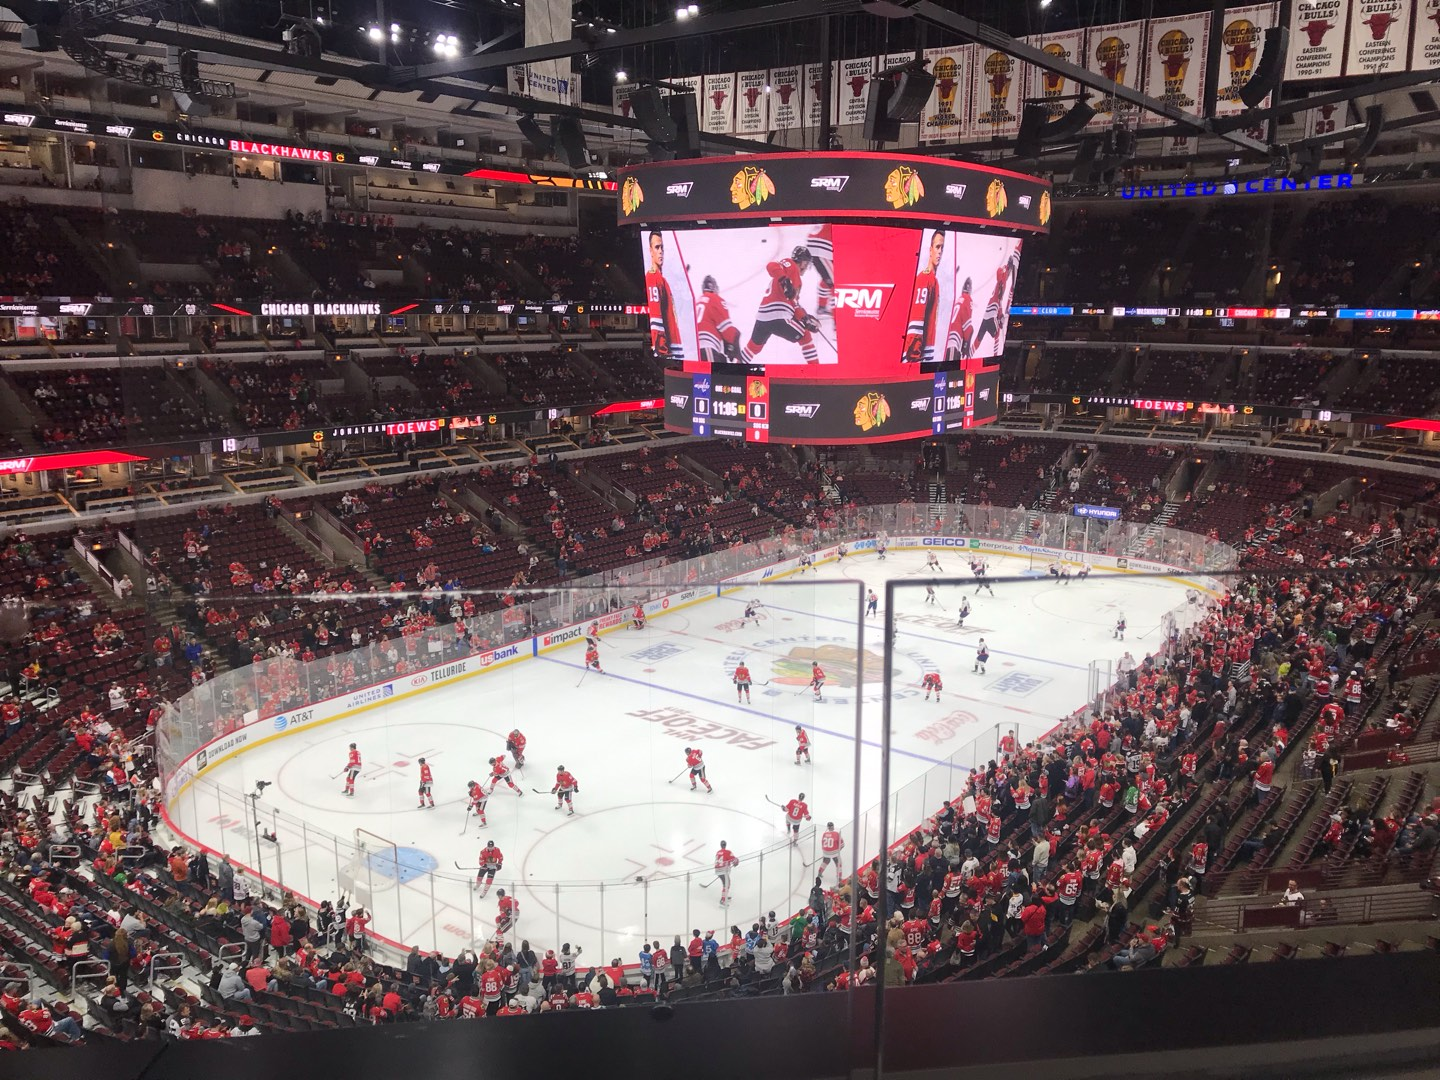 United Center Section 305 Row 1 Seat 18